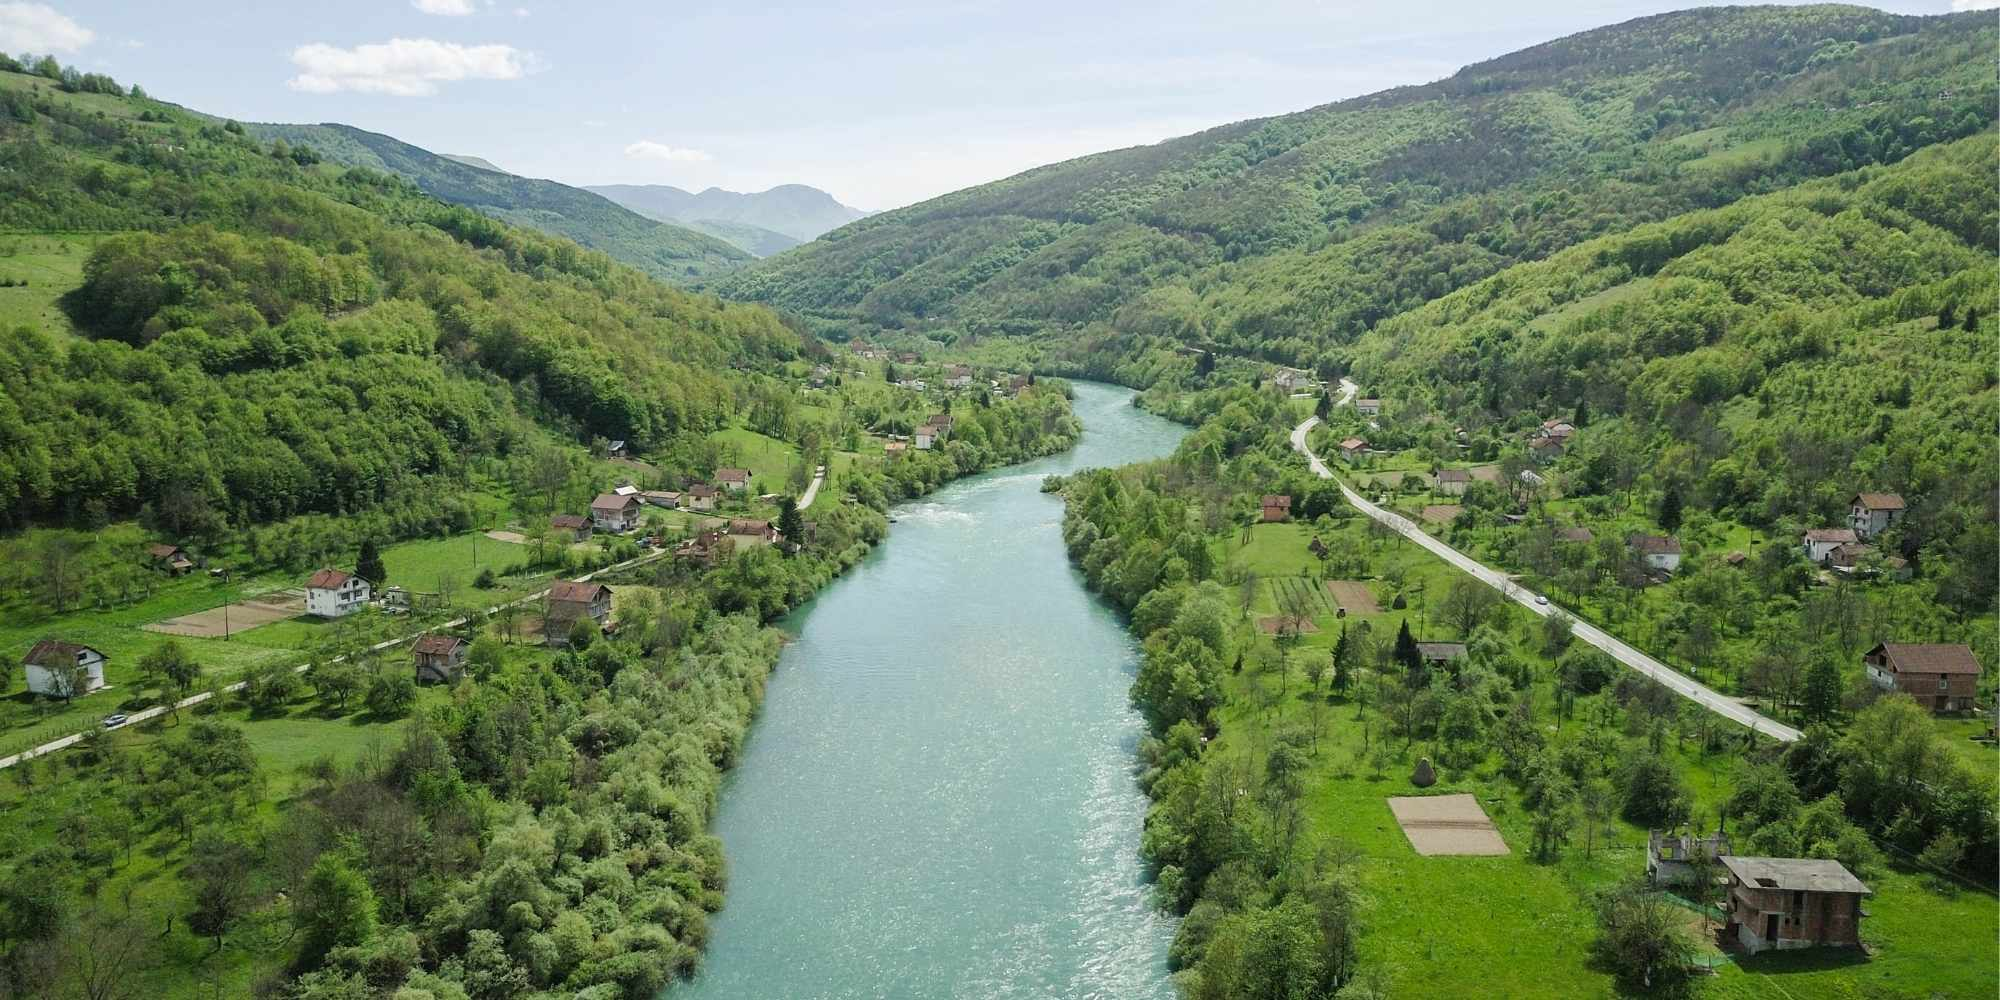 The Upper Drina, Bosnia and Herzegovina, is threatened by hydropower construction